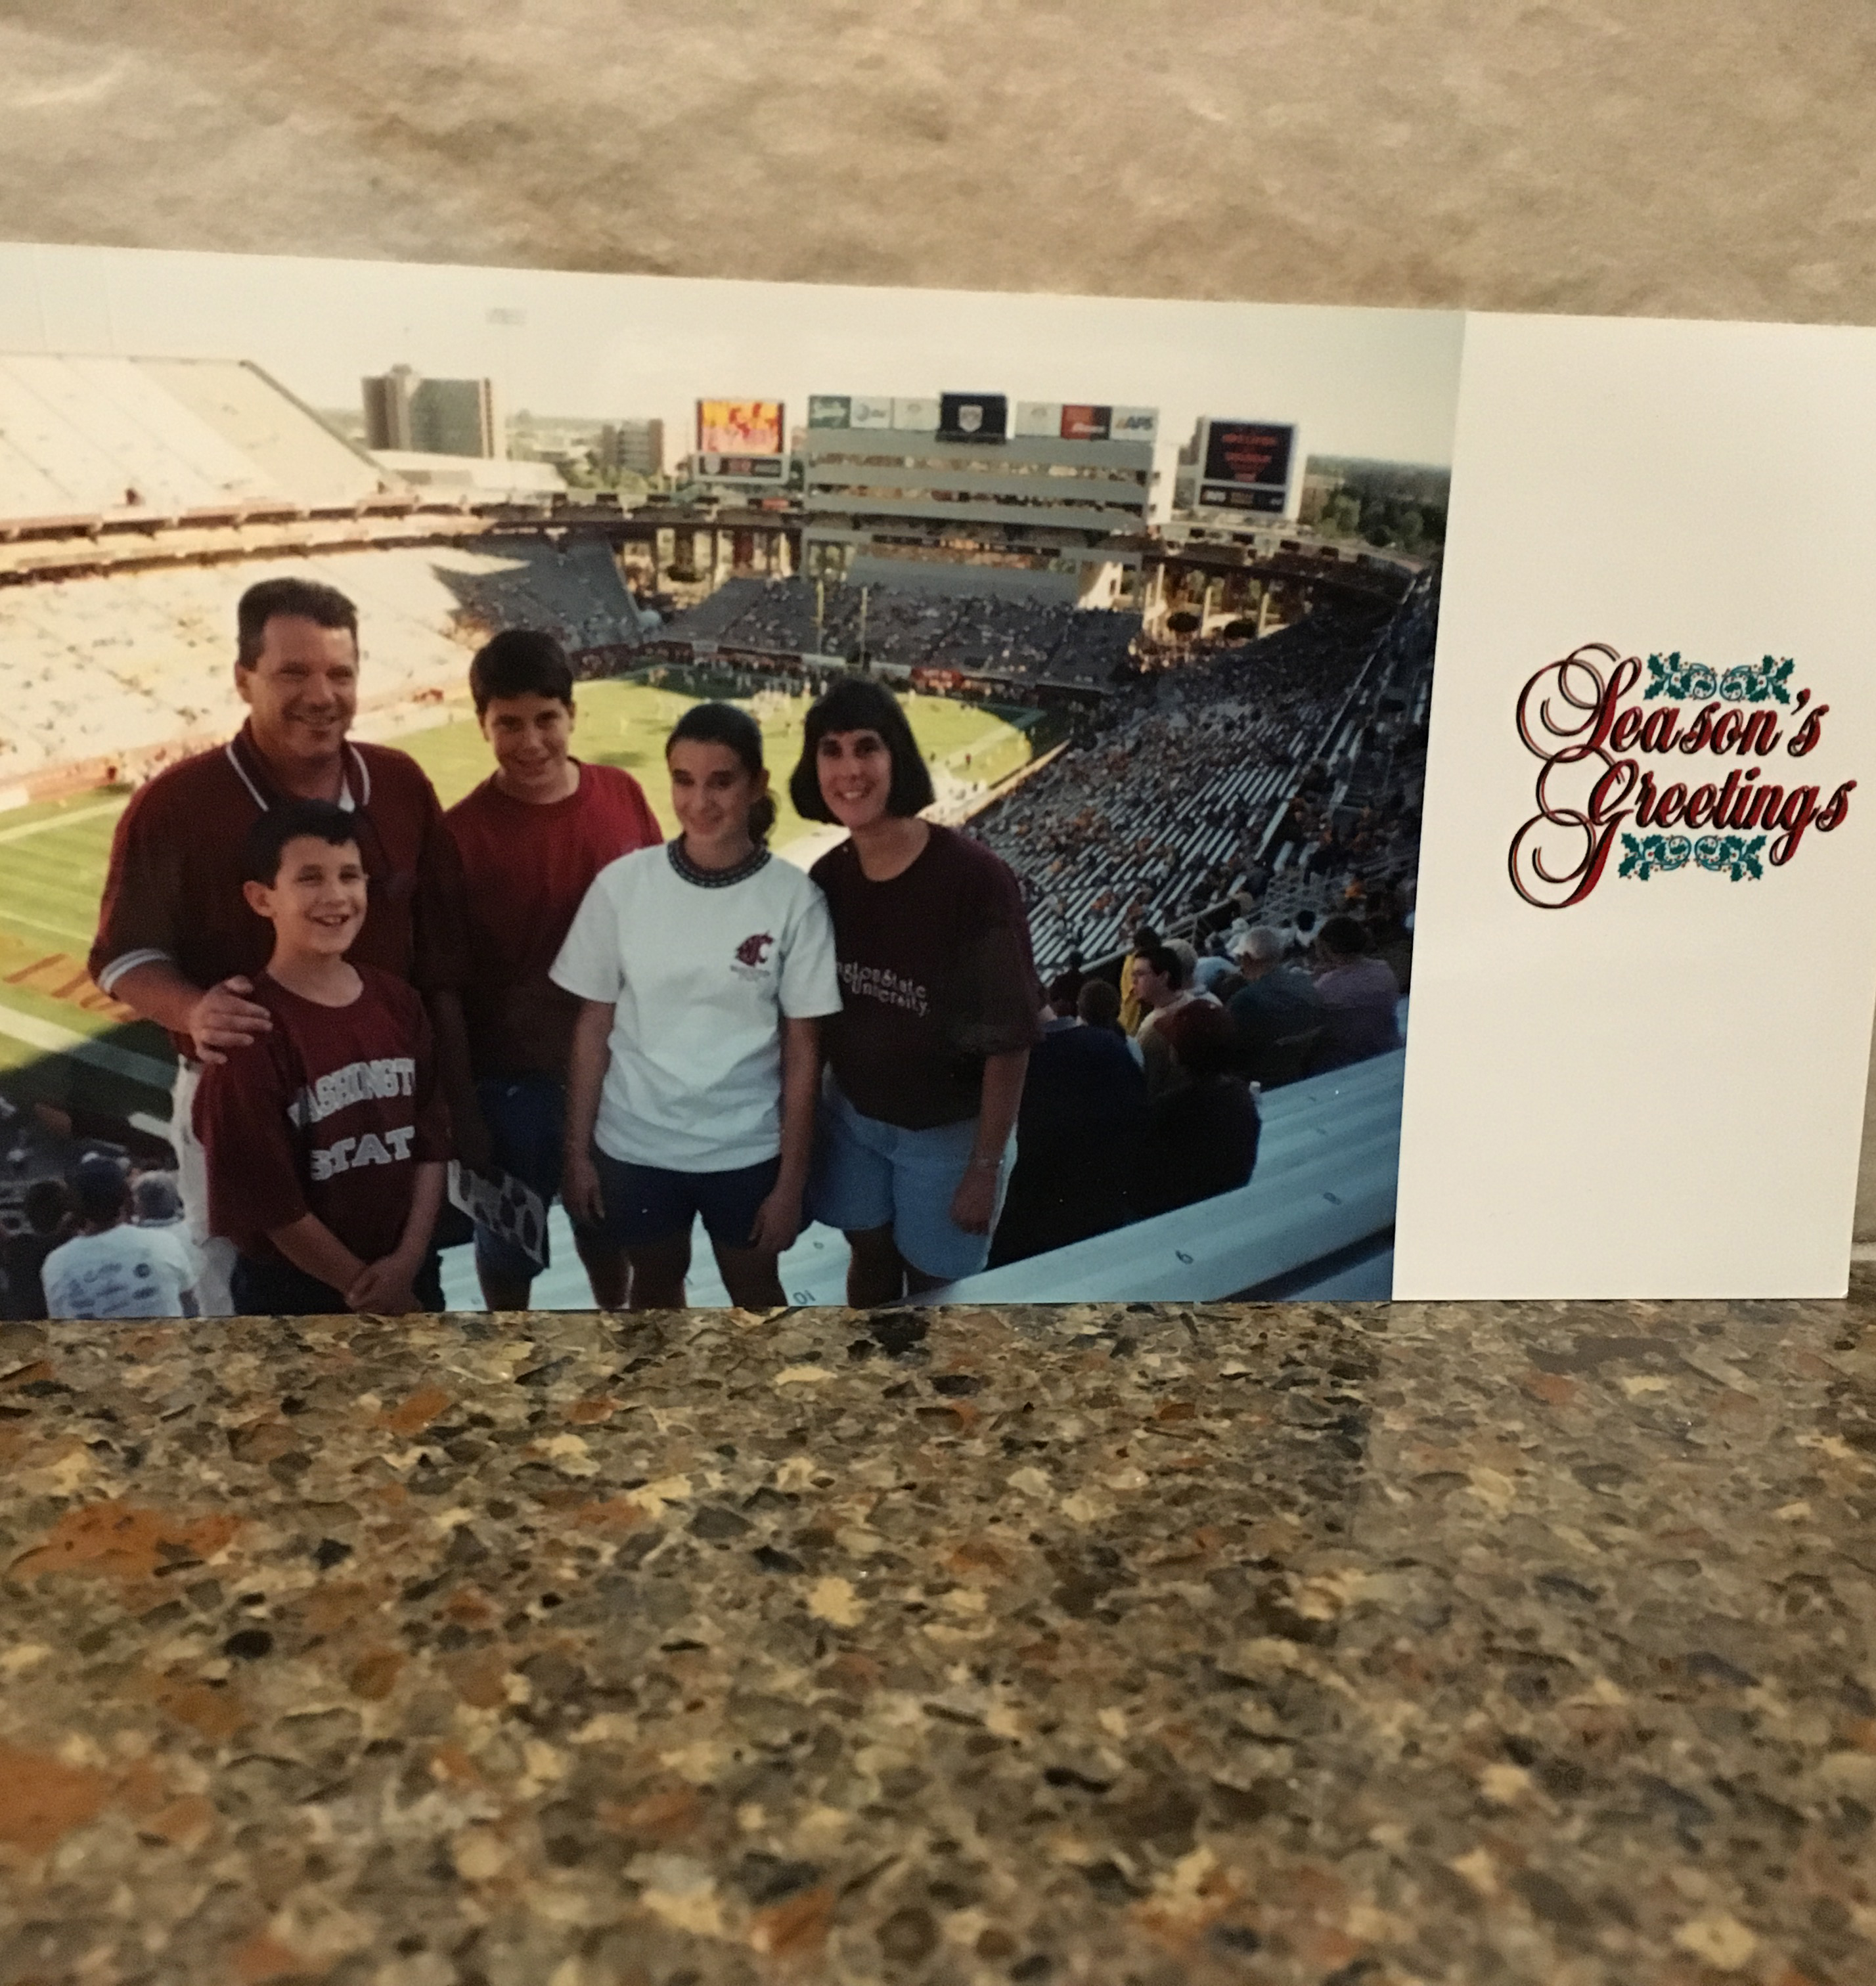 This Christmas card photo was taken when we visited Arizona one October in 1999 to watch the Washington State Cougars play the Arizona State Sun Devils.